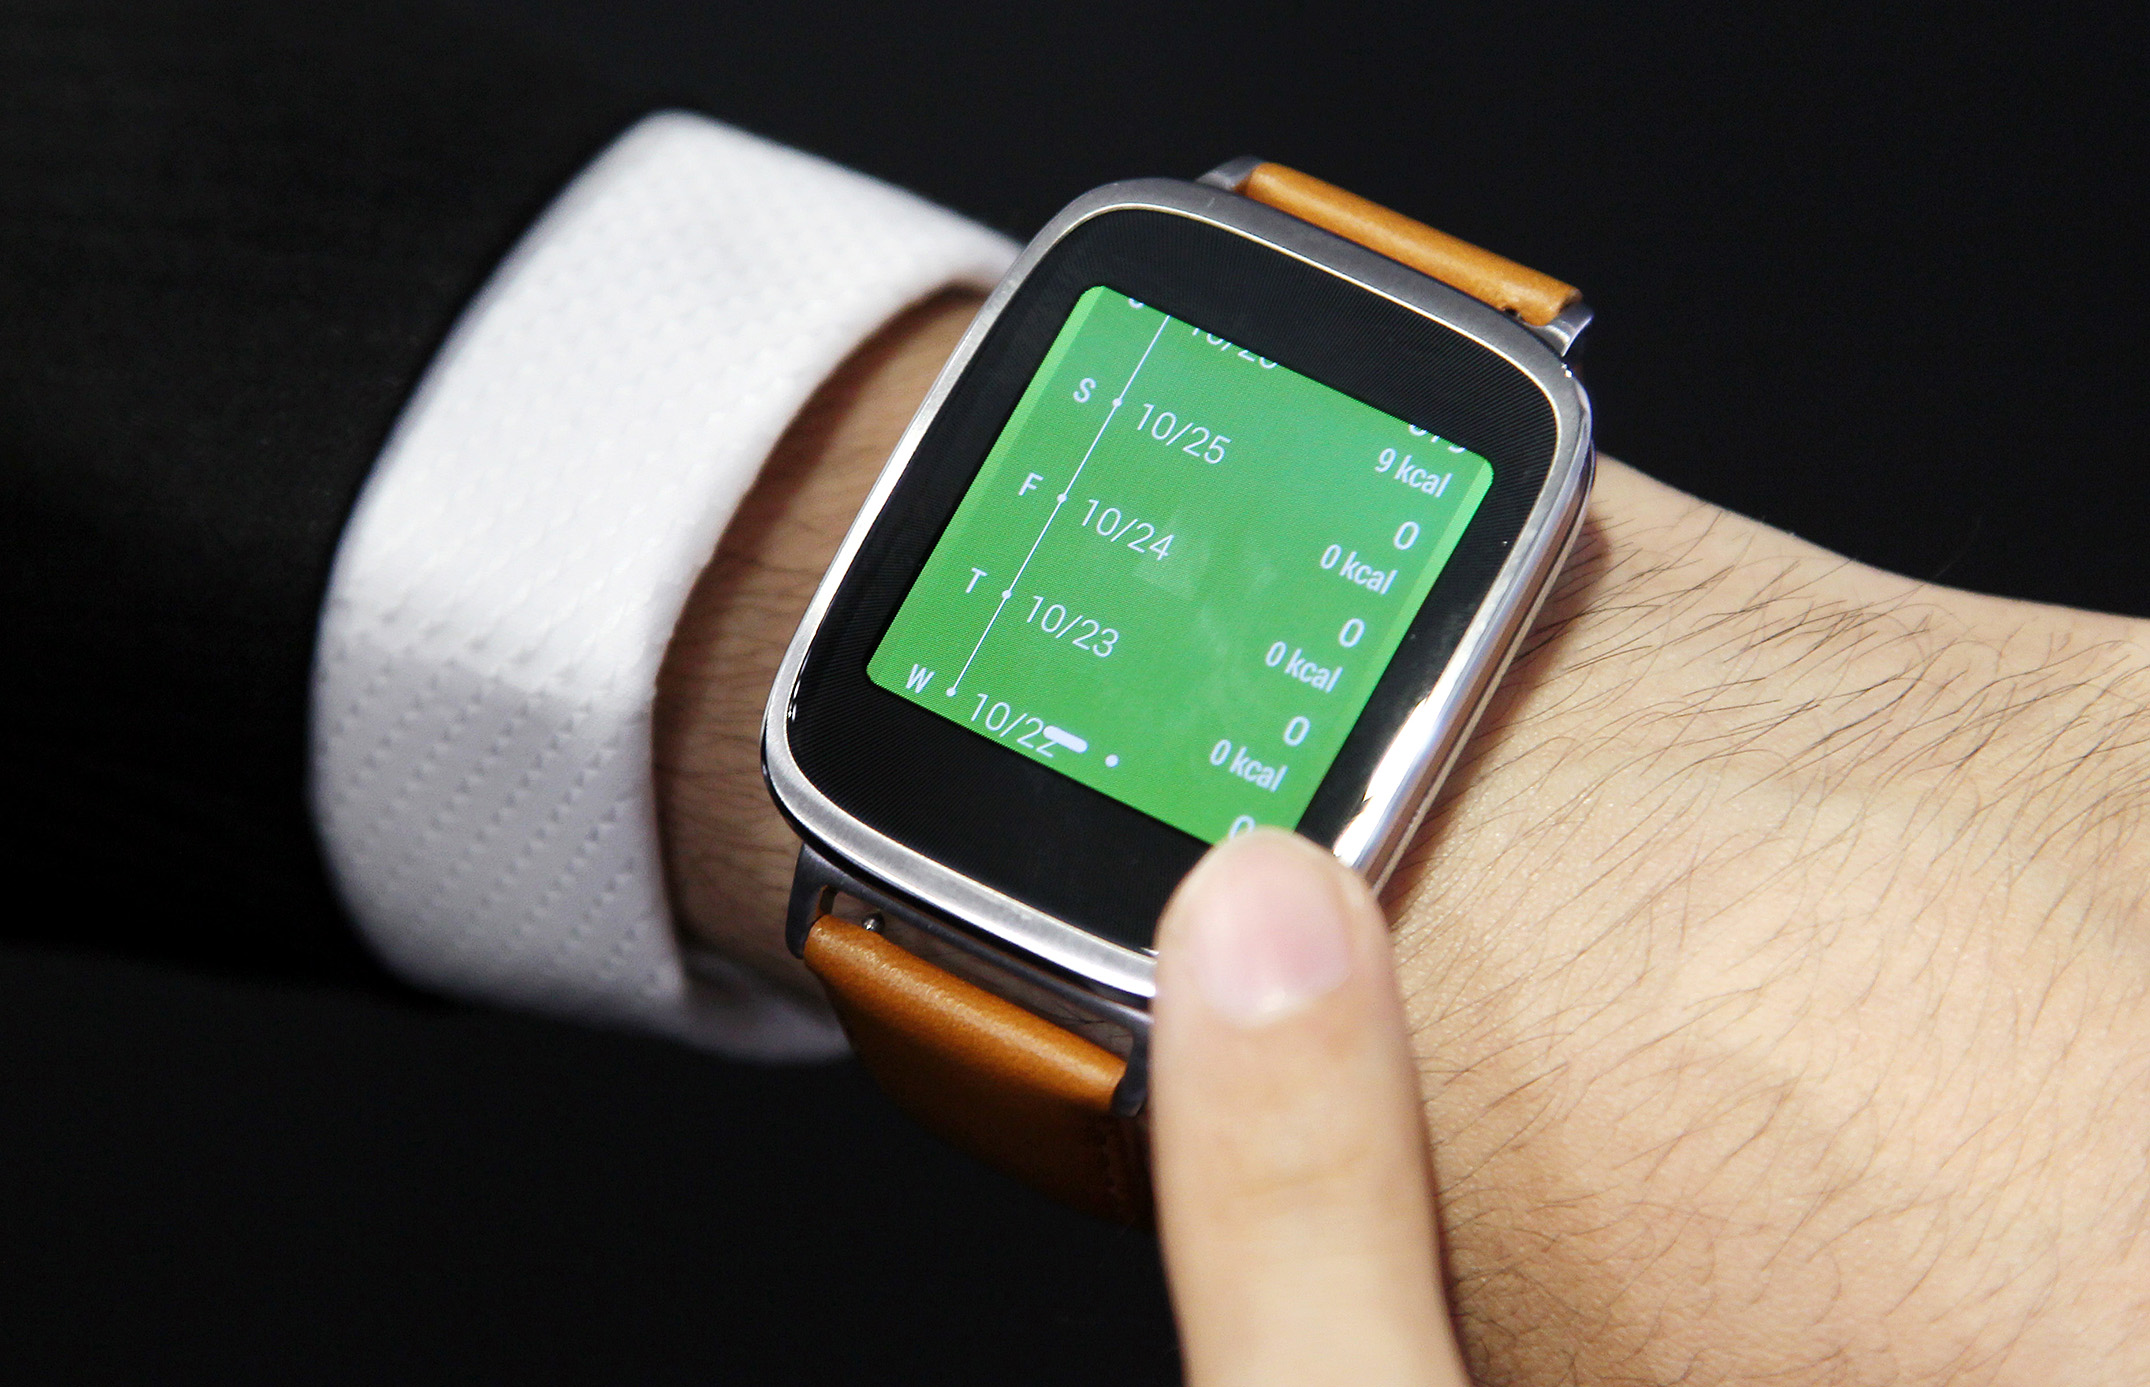 The Asus ZenWatch smartwatch.